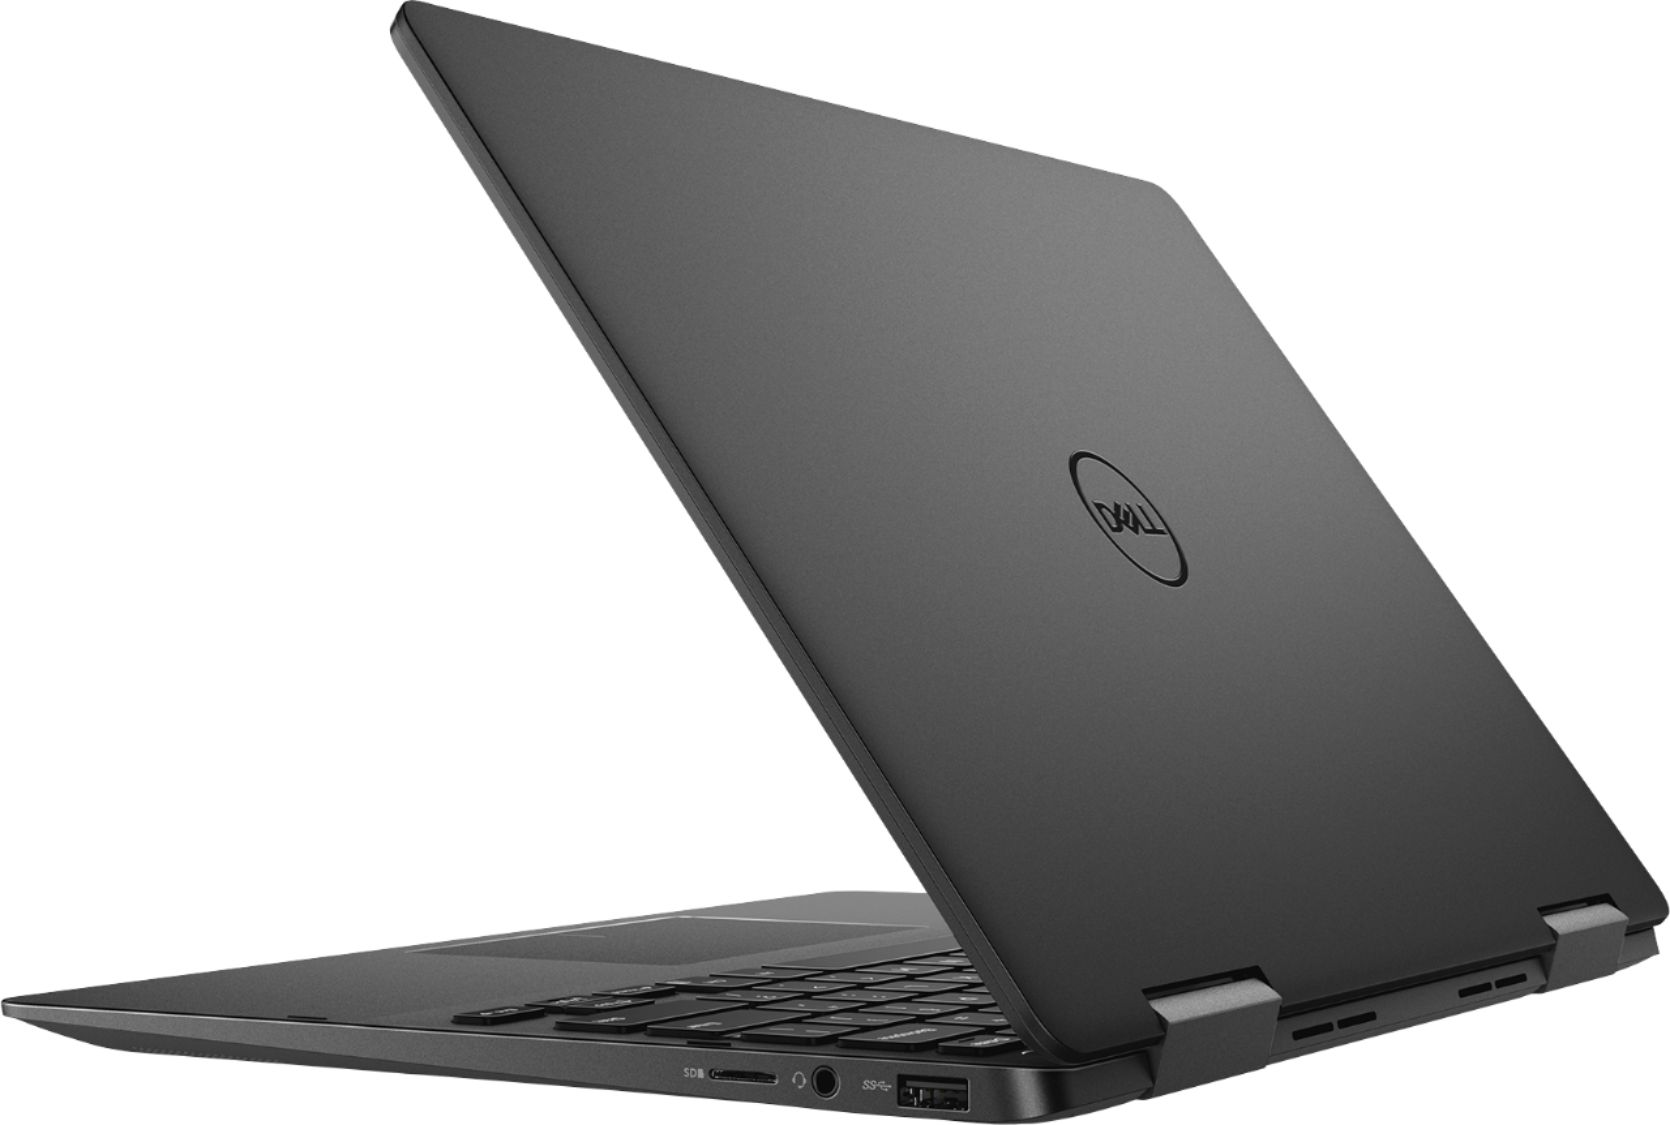 """Alt View Zoom 1. Dell - Geek Squad Certified Refurbished Inspiron 13.3"""" 4K Ultra HD Touch-Screen Laptop - Intel Core i7 - 16GB Memory- 256GB SSD - Black."""